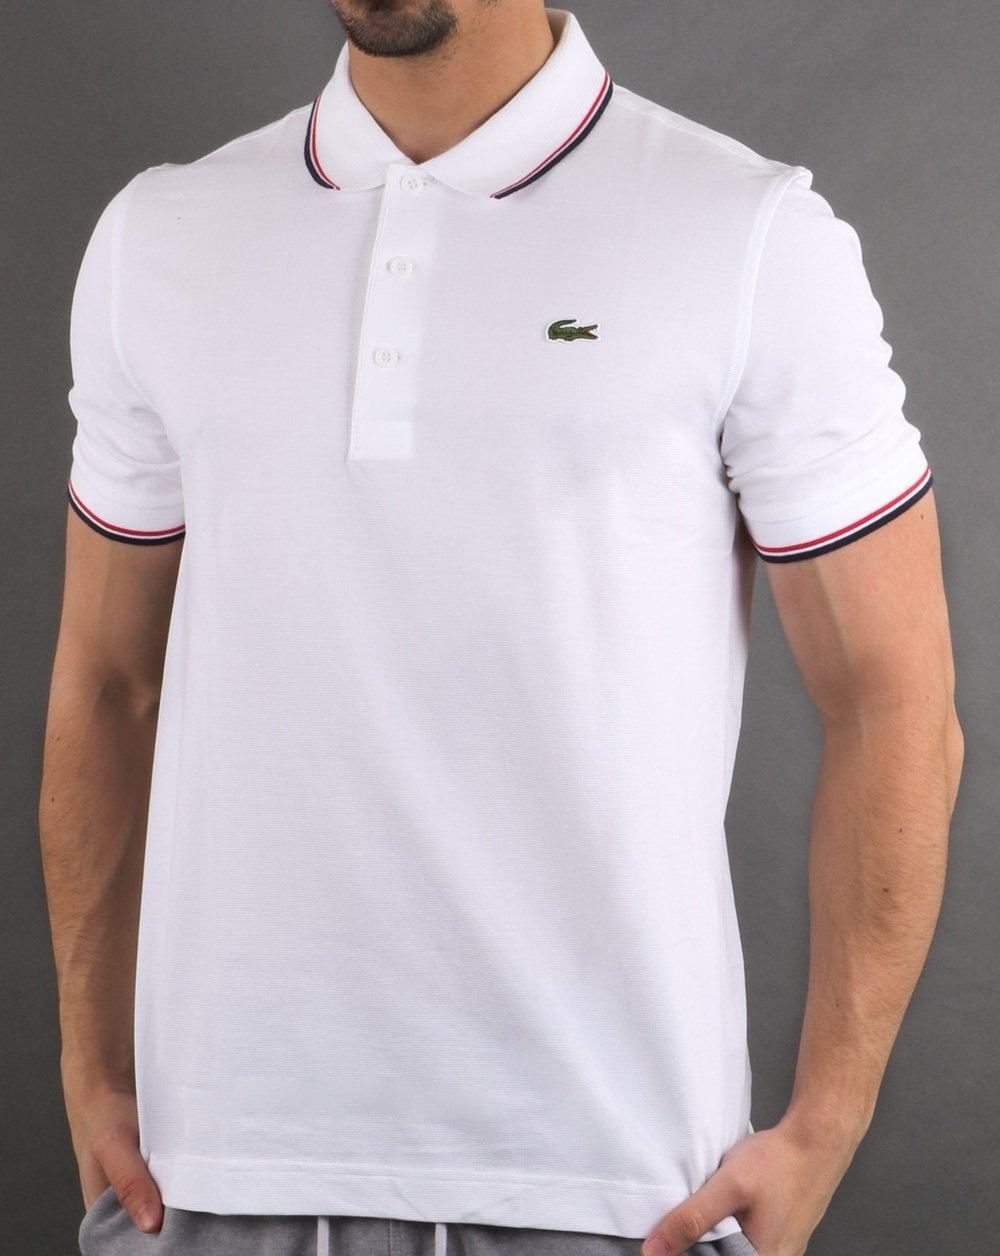 5b2c32d2 Lacoste Tipped Polo Shirt White/Navy/Red